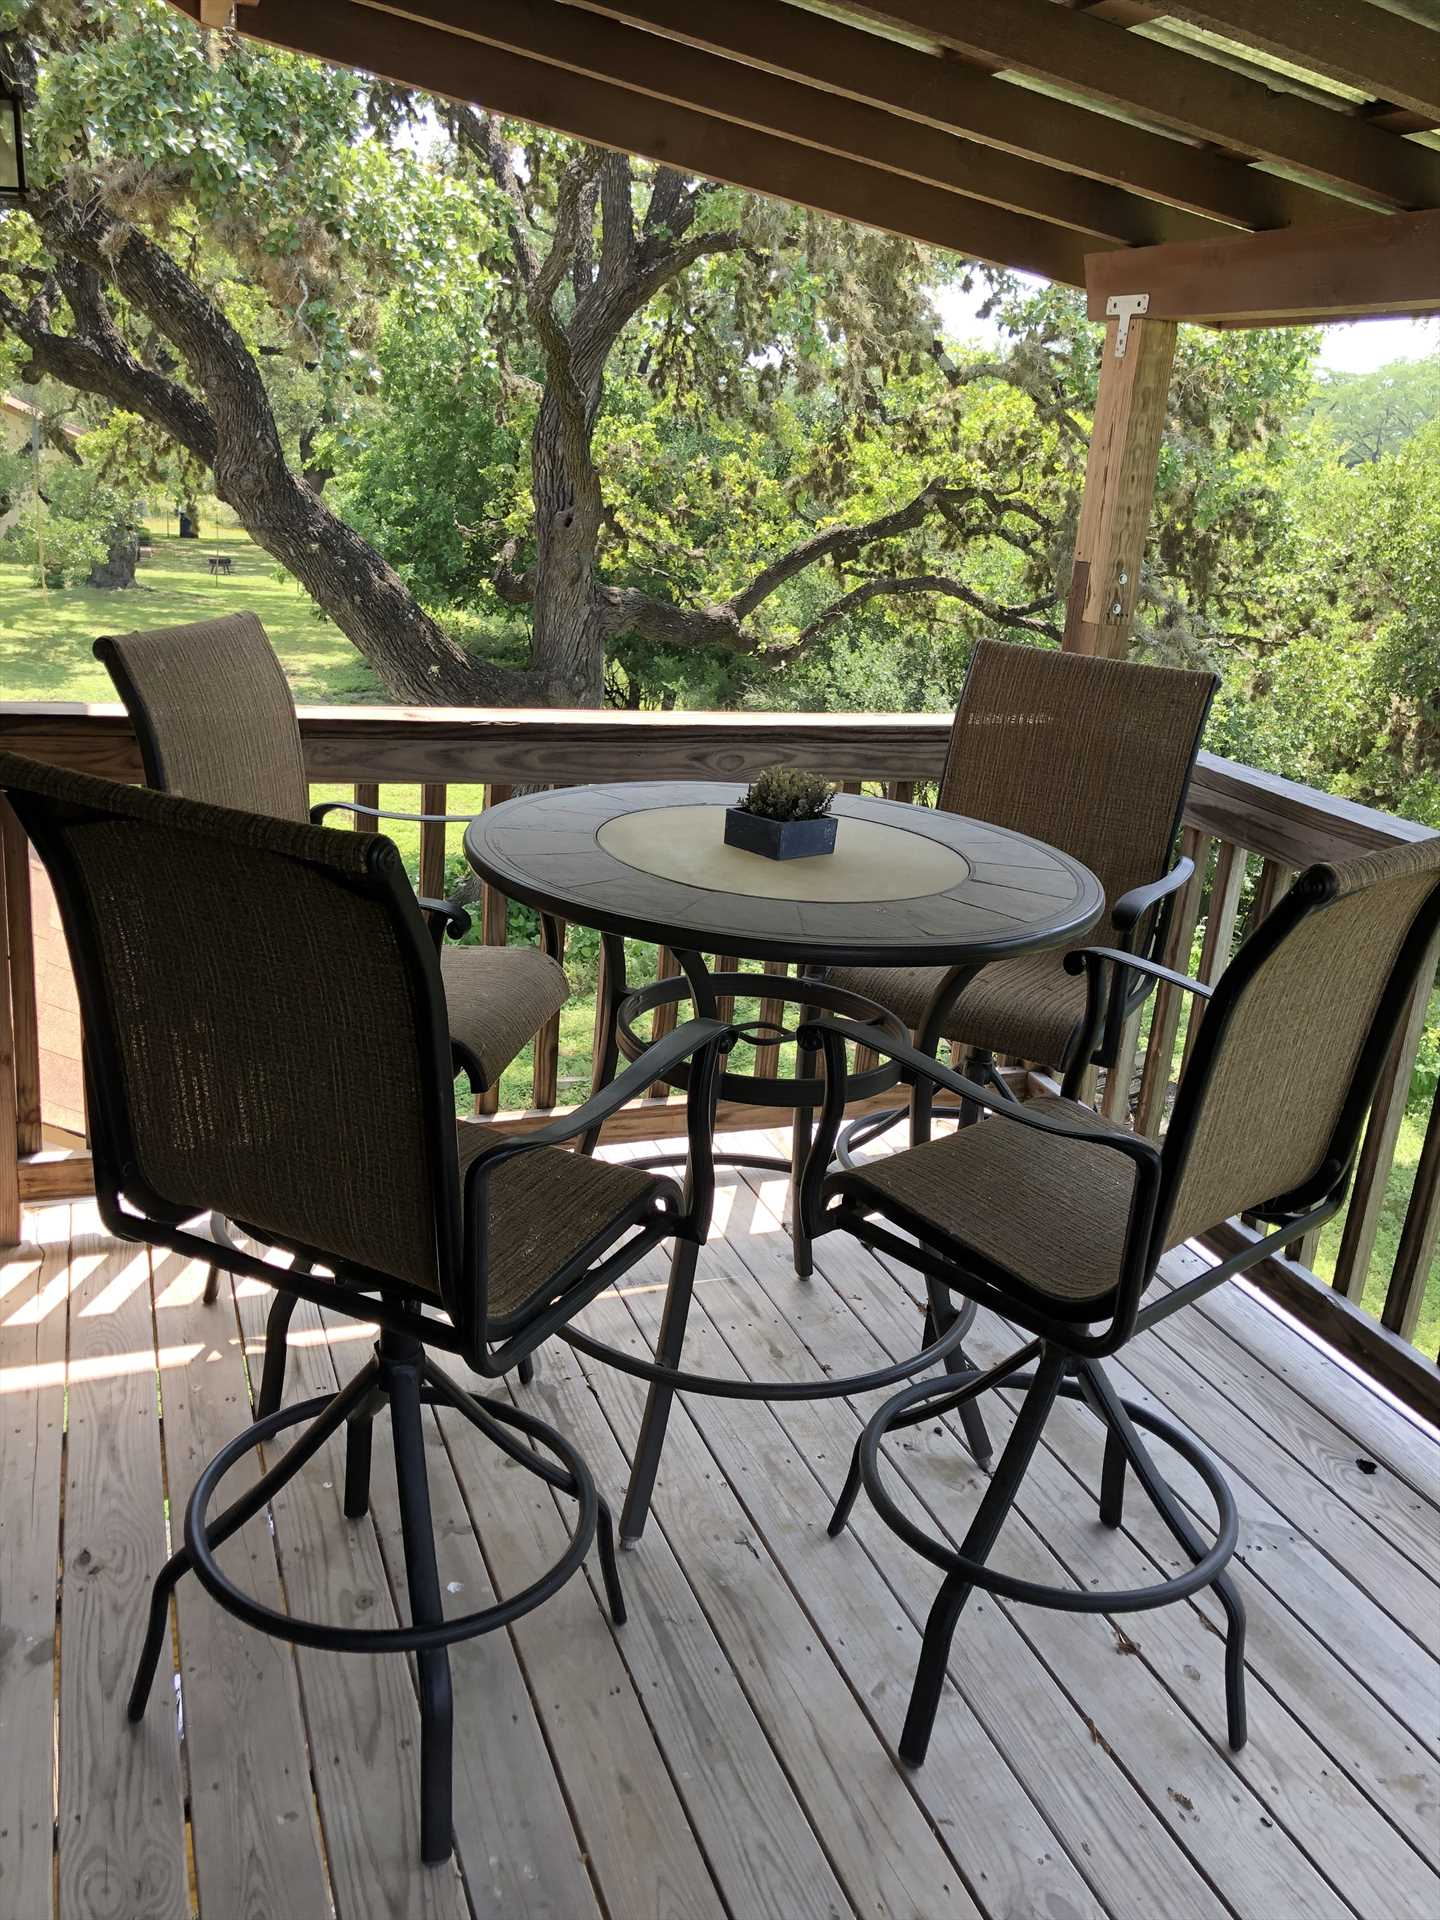 Conversation and relaxation are yours whenever you'd like in the comfy patio furniture on the shaded deck.